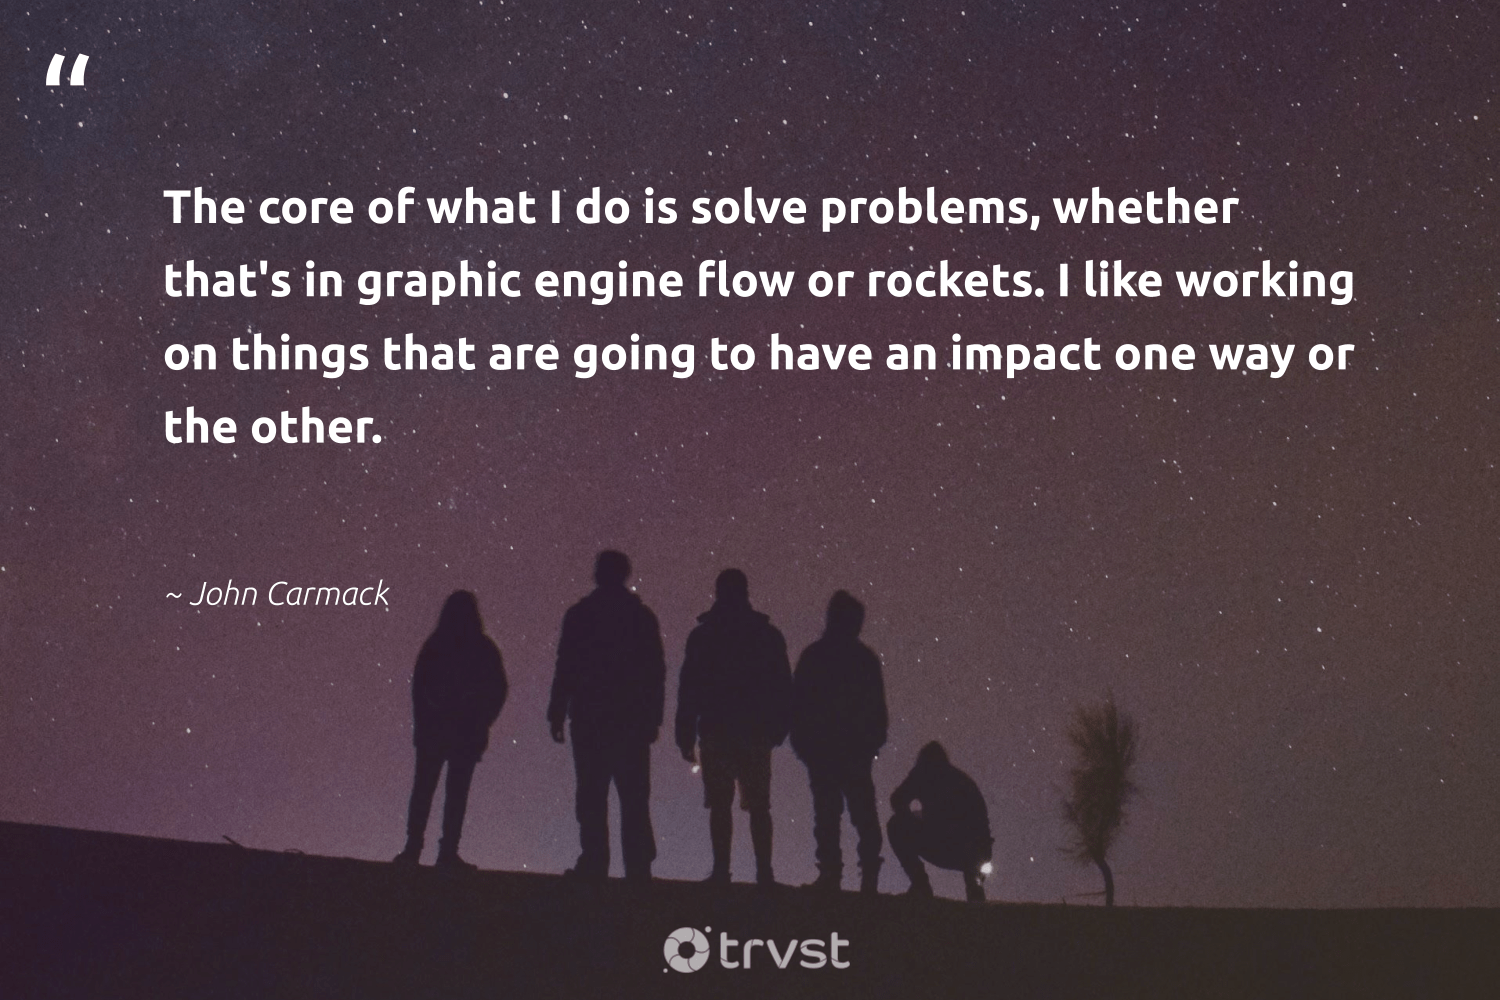 """""""The core of what I do is solve problems, whether that's in graphic engine flow or rockets. I like working on things that are going to have an impact one way or the other.""""  - John Carmack #trvst #quotes #impact #weareallone #planetearthfirst #dogood #ecoconscious #betterplanet #bethechange #ethicalbusiness #socialimpact #socialchange"""